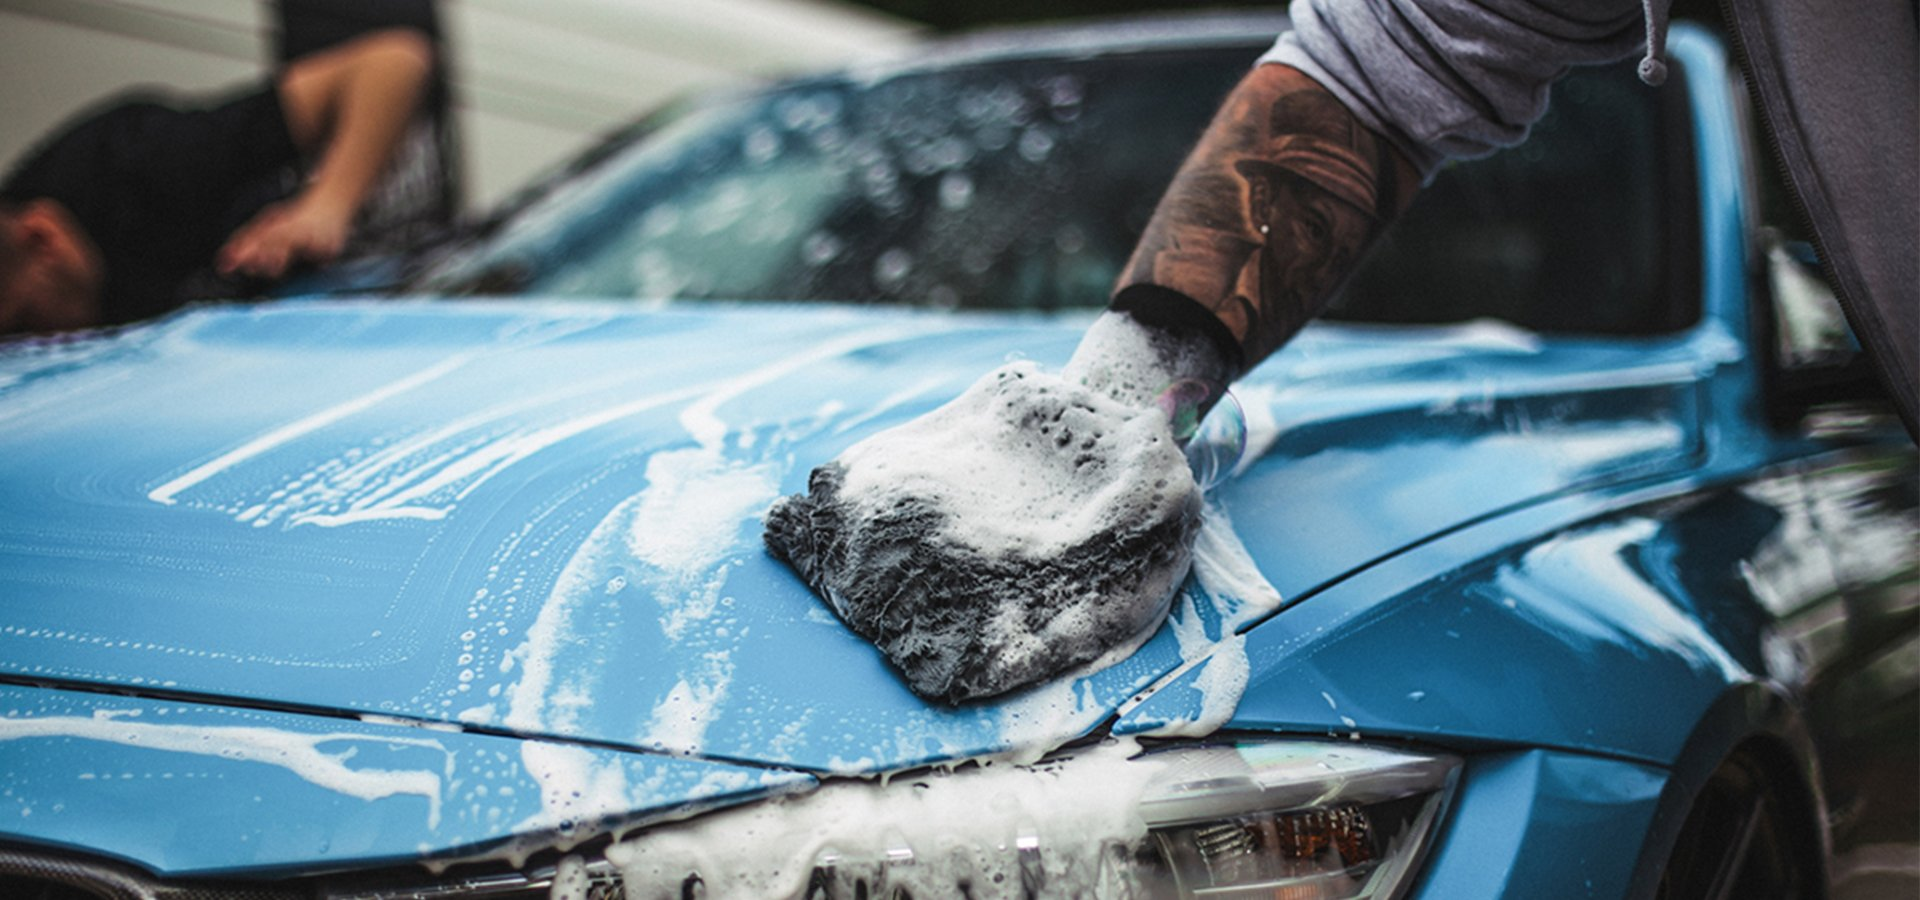 Exterior detail - Our exterior detail ensures that the exterior of your vehicle is immaculateAll areas including paintwork, wheels, arches, door jambs and glass are thoroughly cleaned and protected